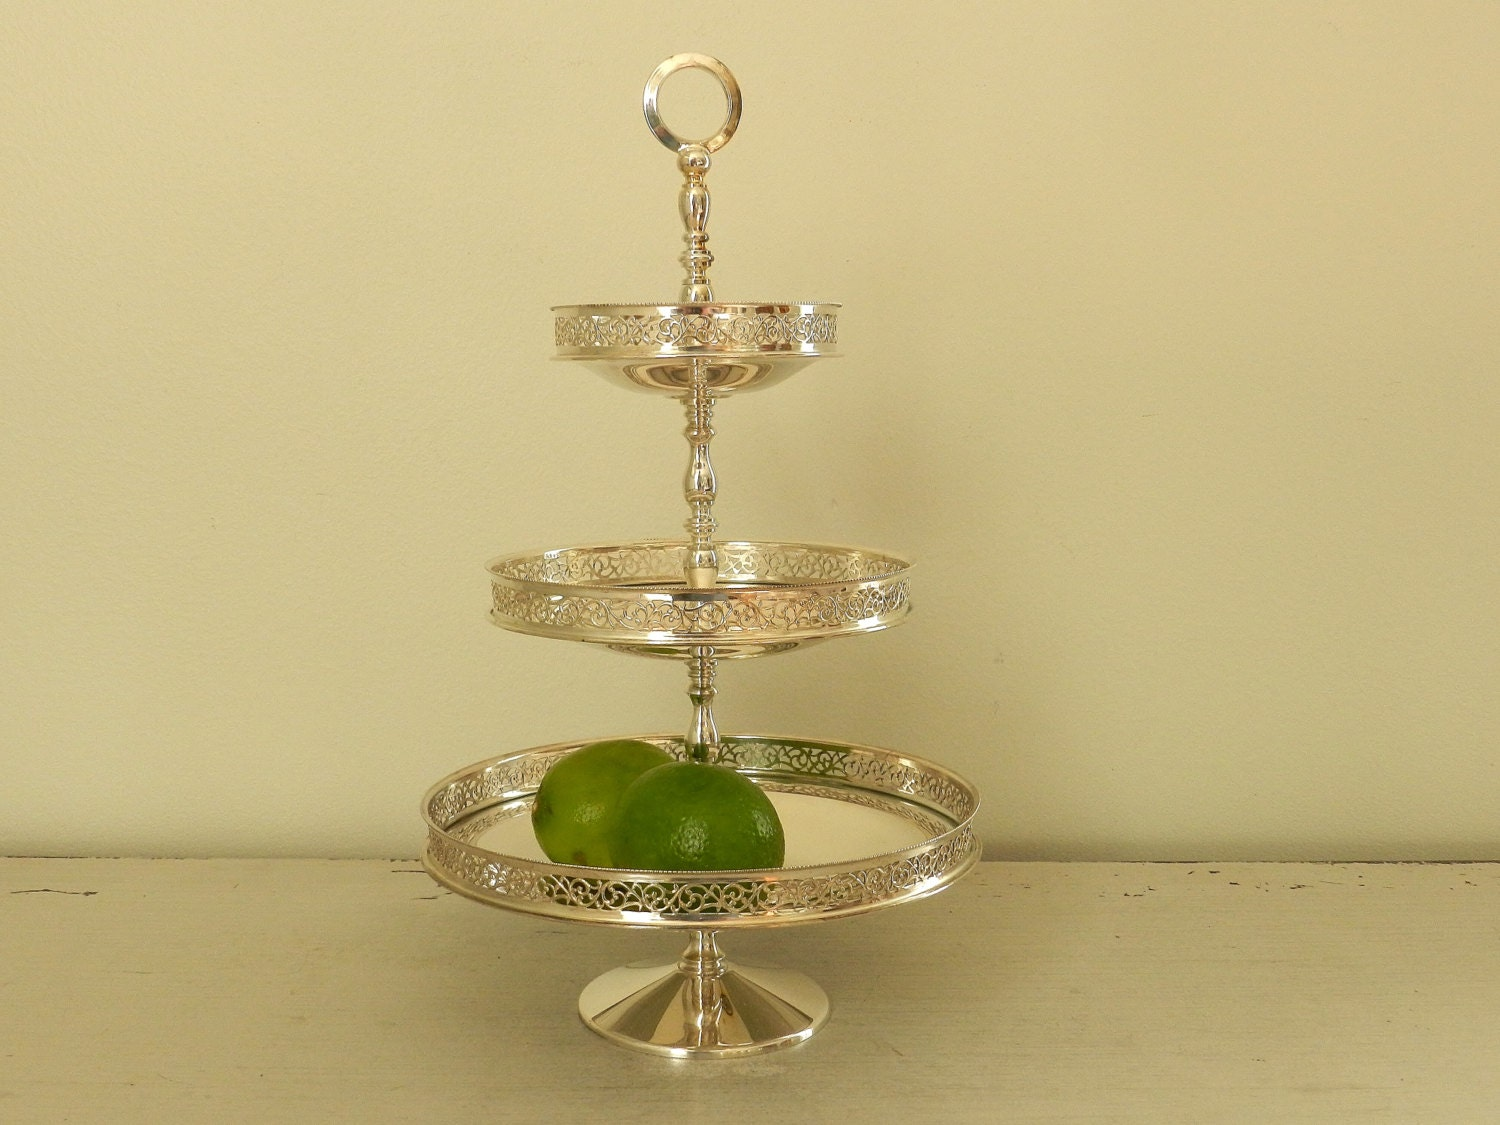 silver plated serving tray 3 tier tray three tiered silver. Black Bedroom Furniture Sets. Home Design Ideas